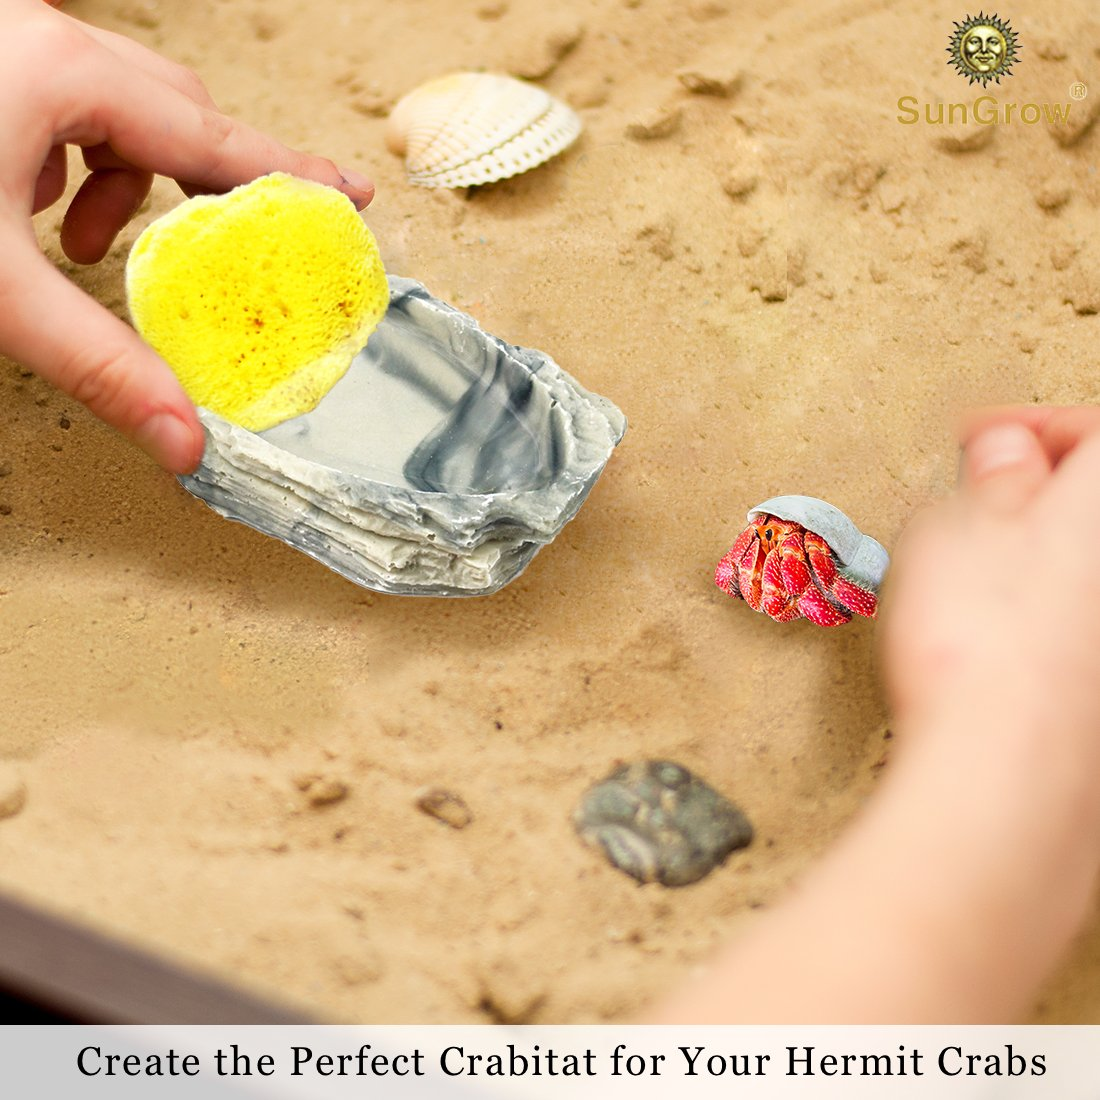 4-Pack Sea Sponges for Hermit Crabs --- Moisture Cocoon that keeps crabs Moist and Hydrated - Prevents Accidental Drowning and Suffocation - 100% All Natural and Safe